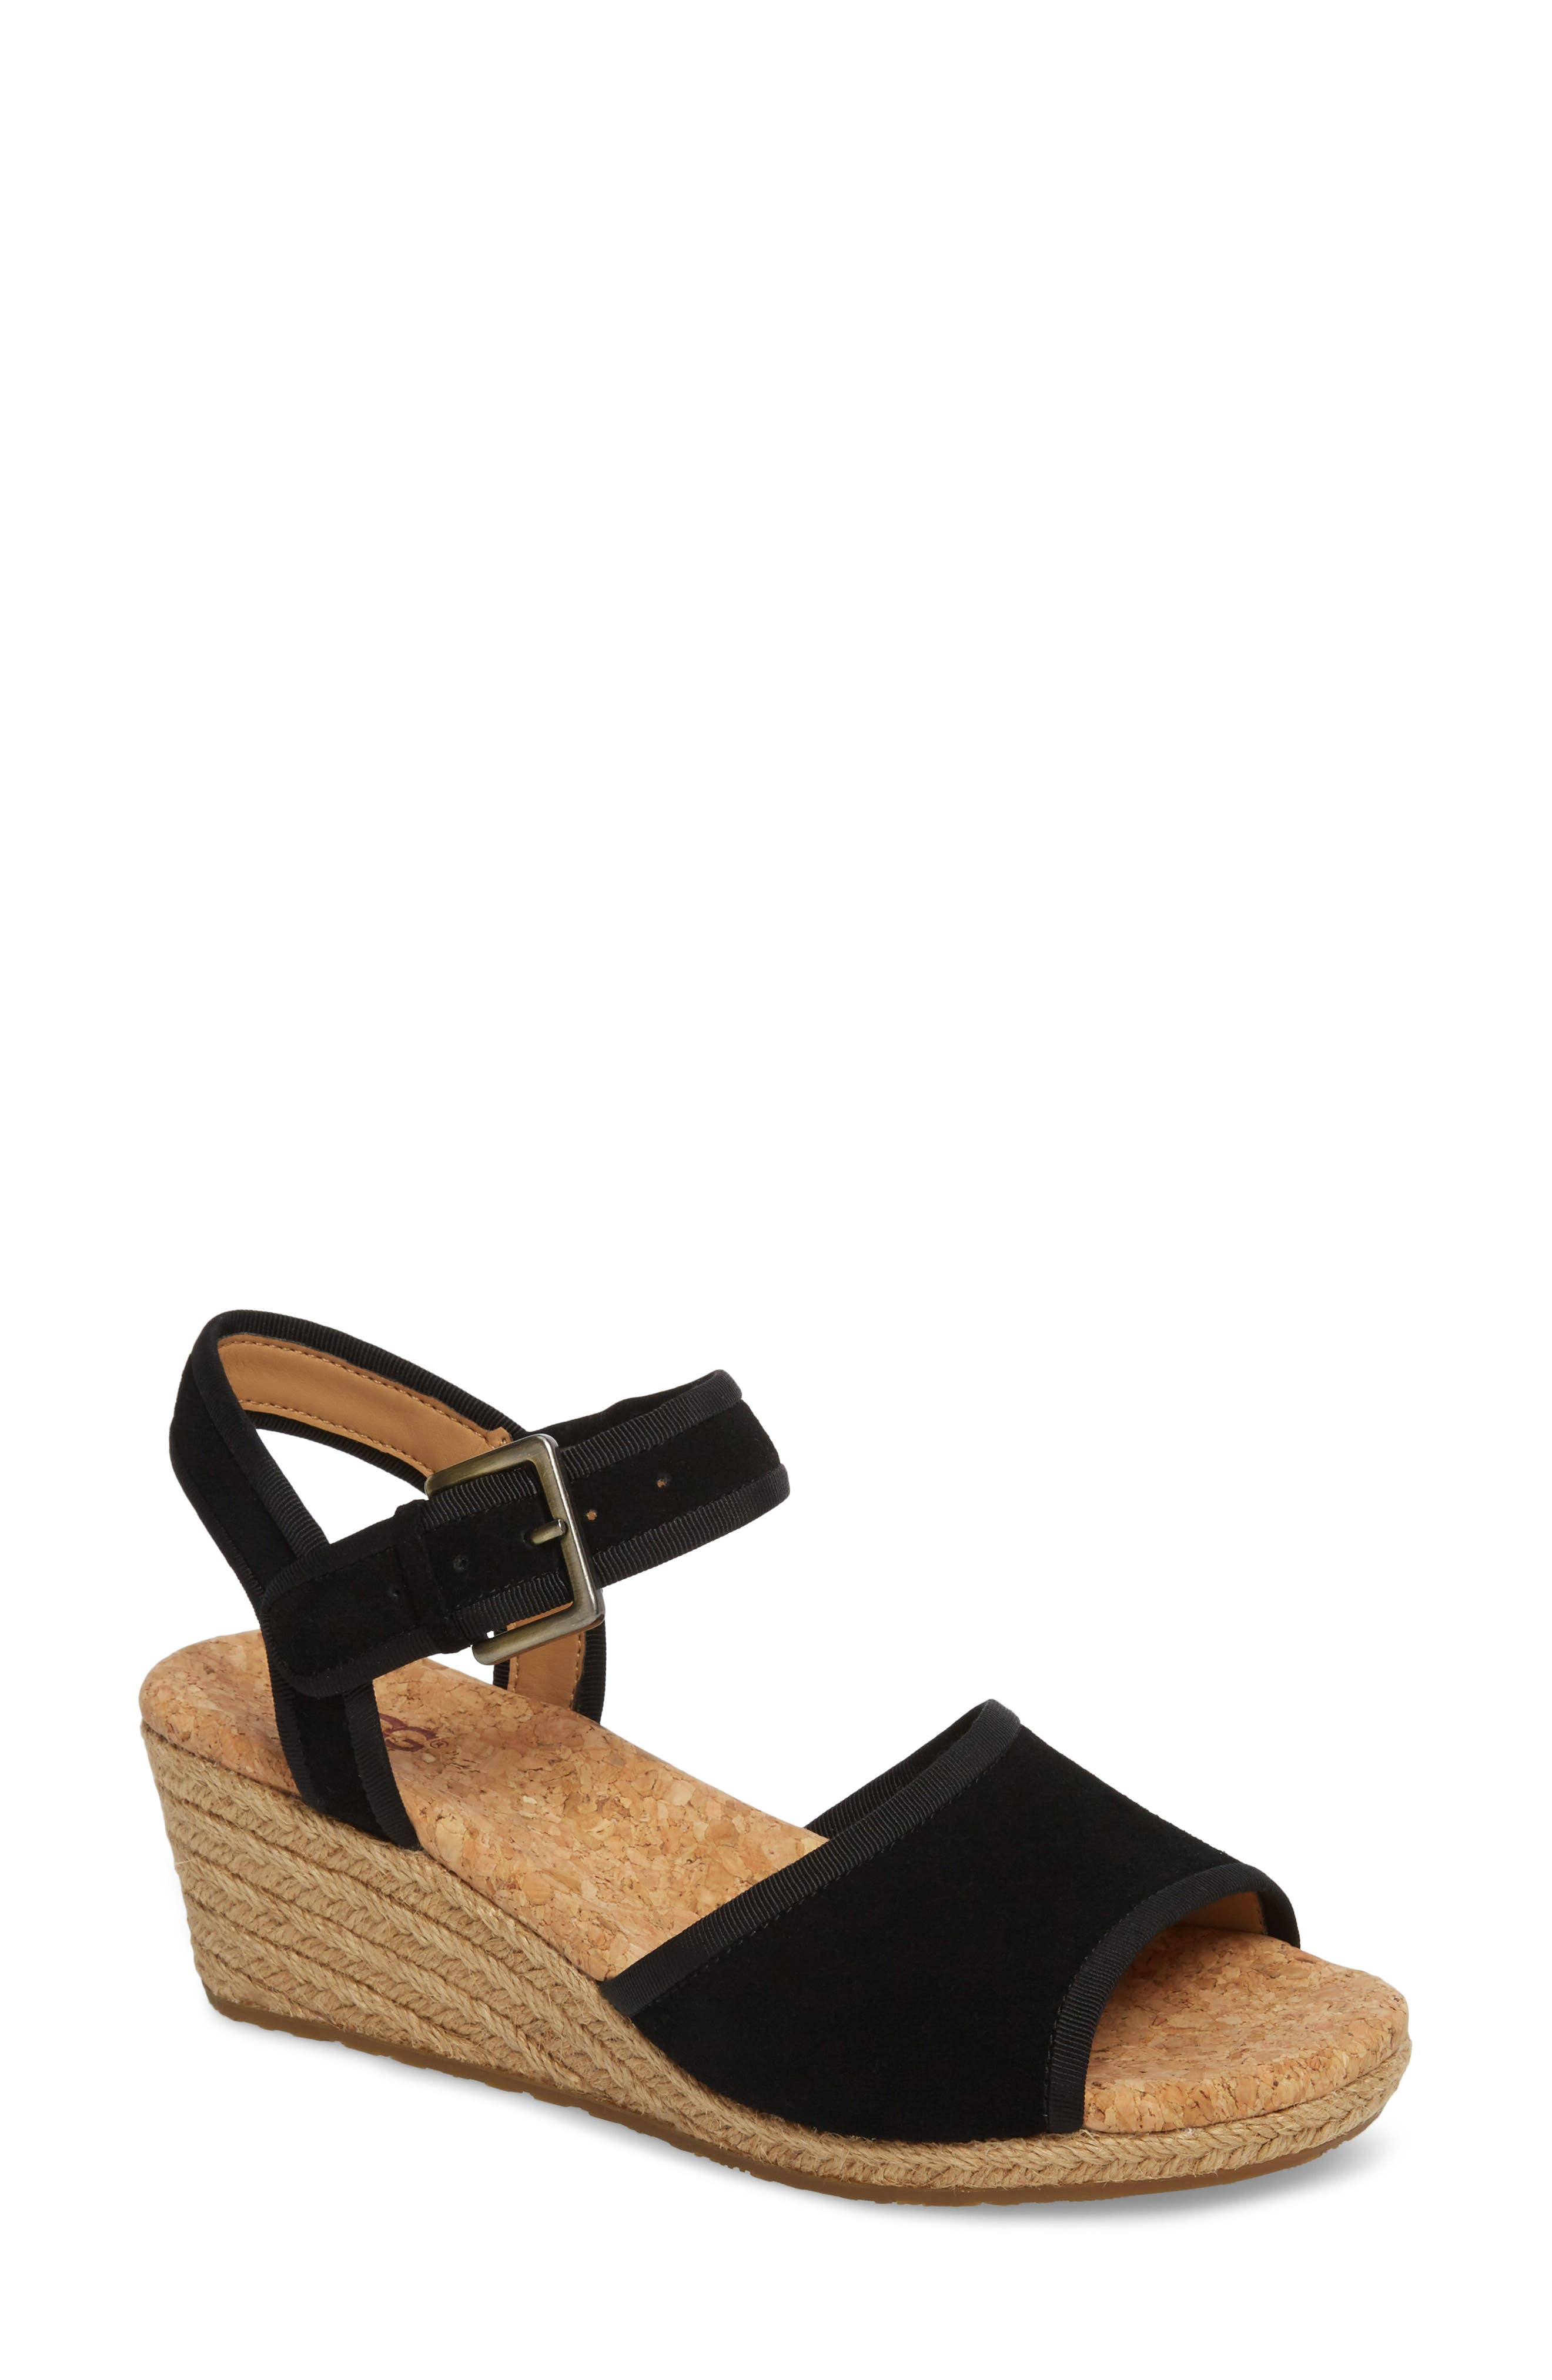 Maybell Wedge Sandal,                         Main,                         color, Black Suede